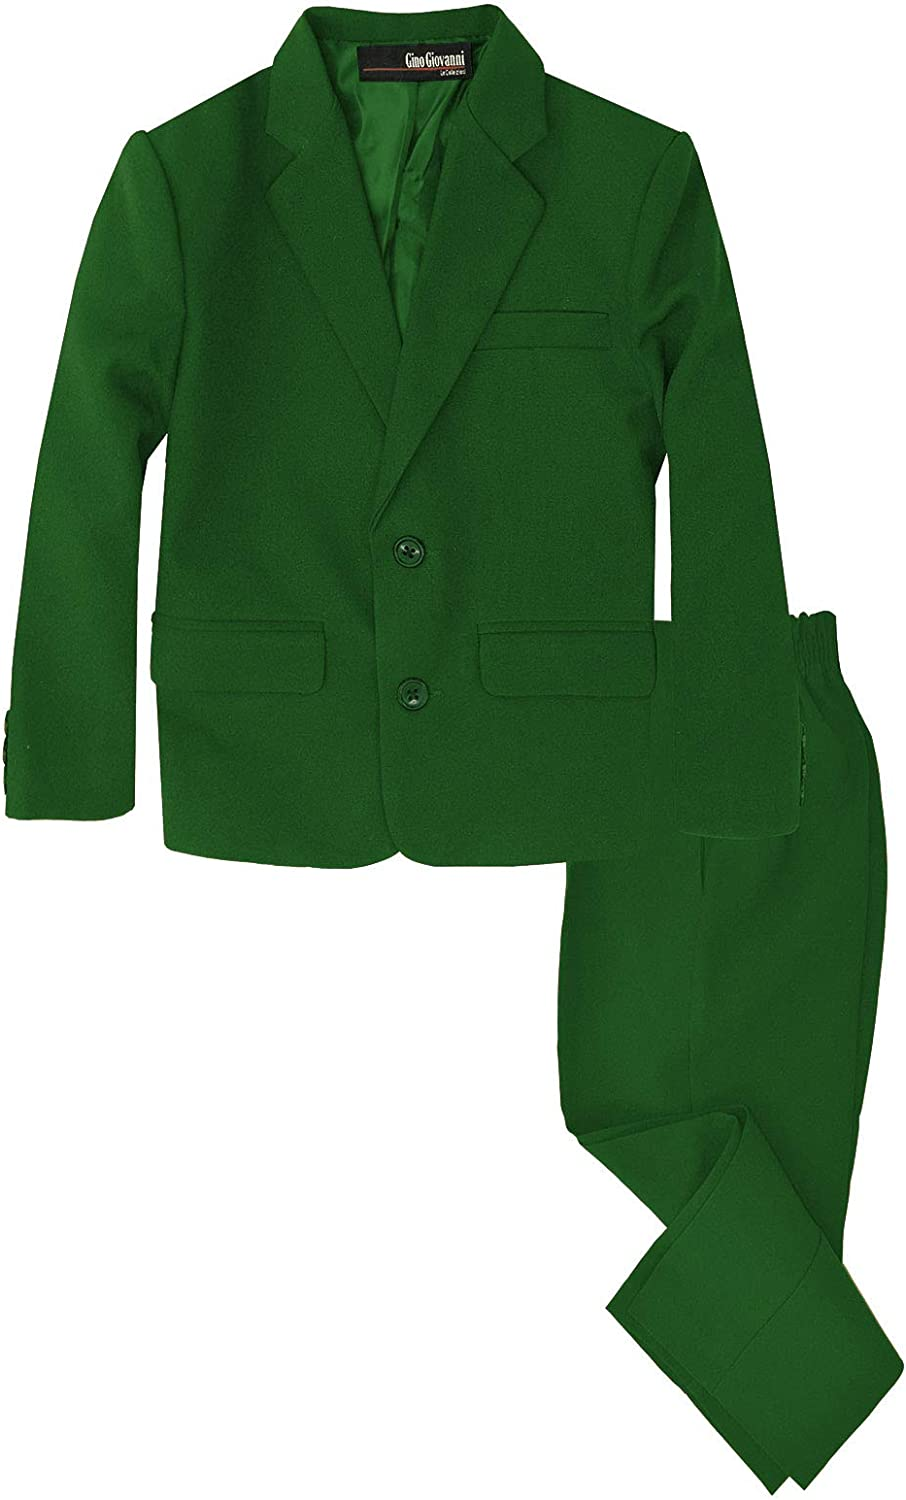 Gino Giovanni Boys 2 Piece Formal Very popular New sales Suit Set